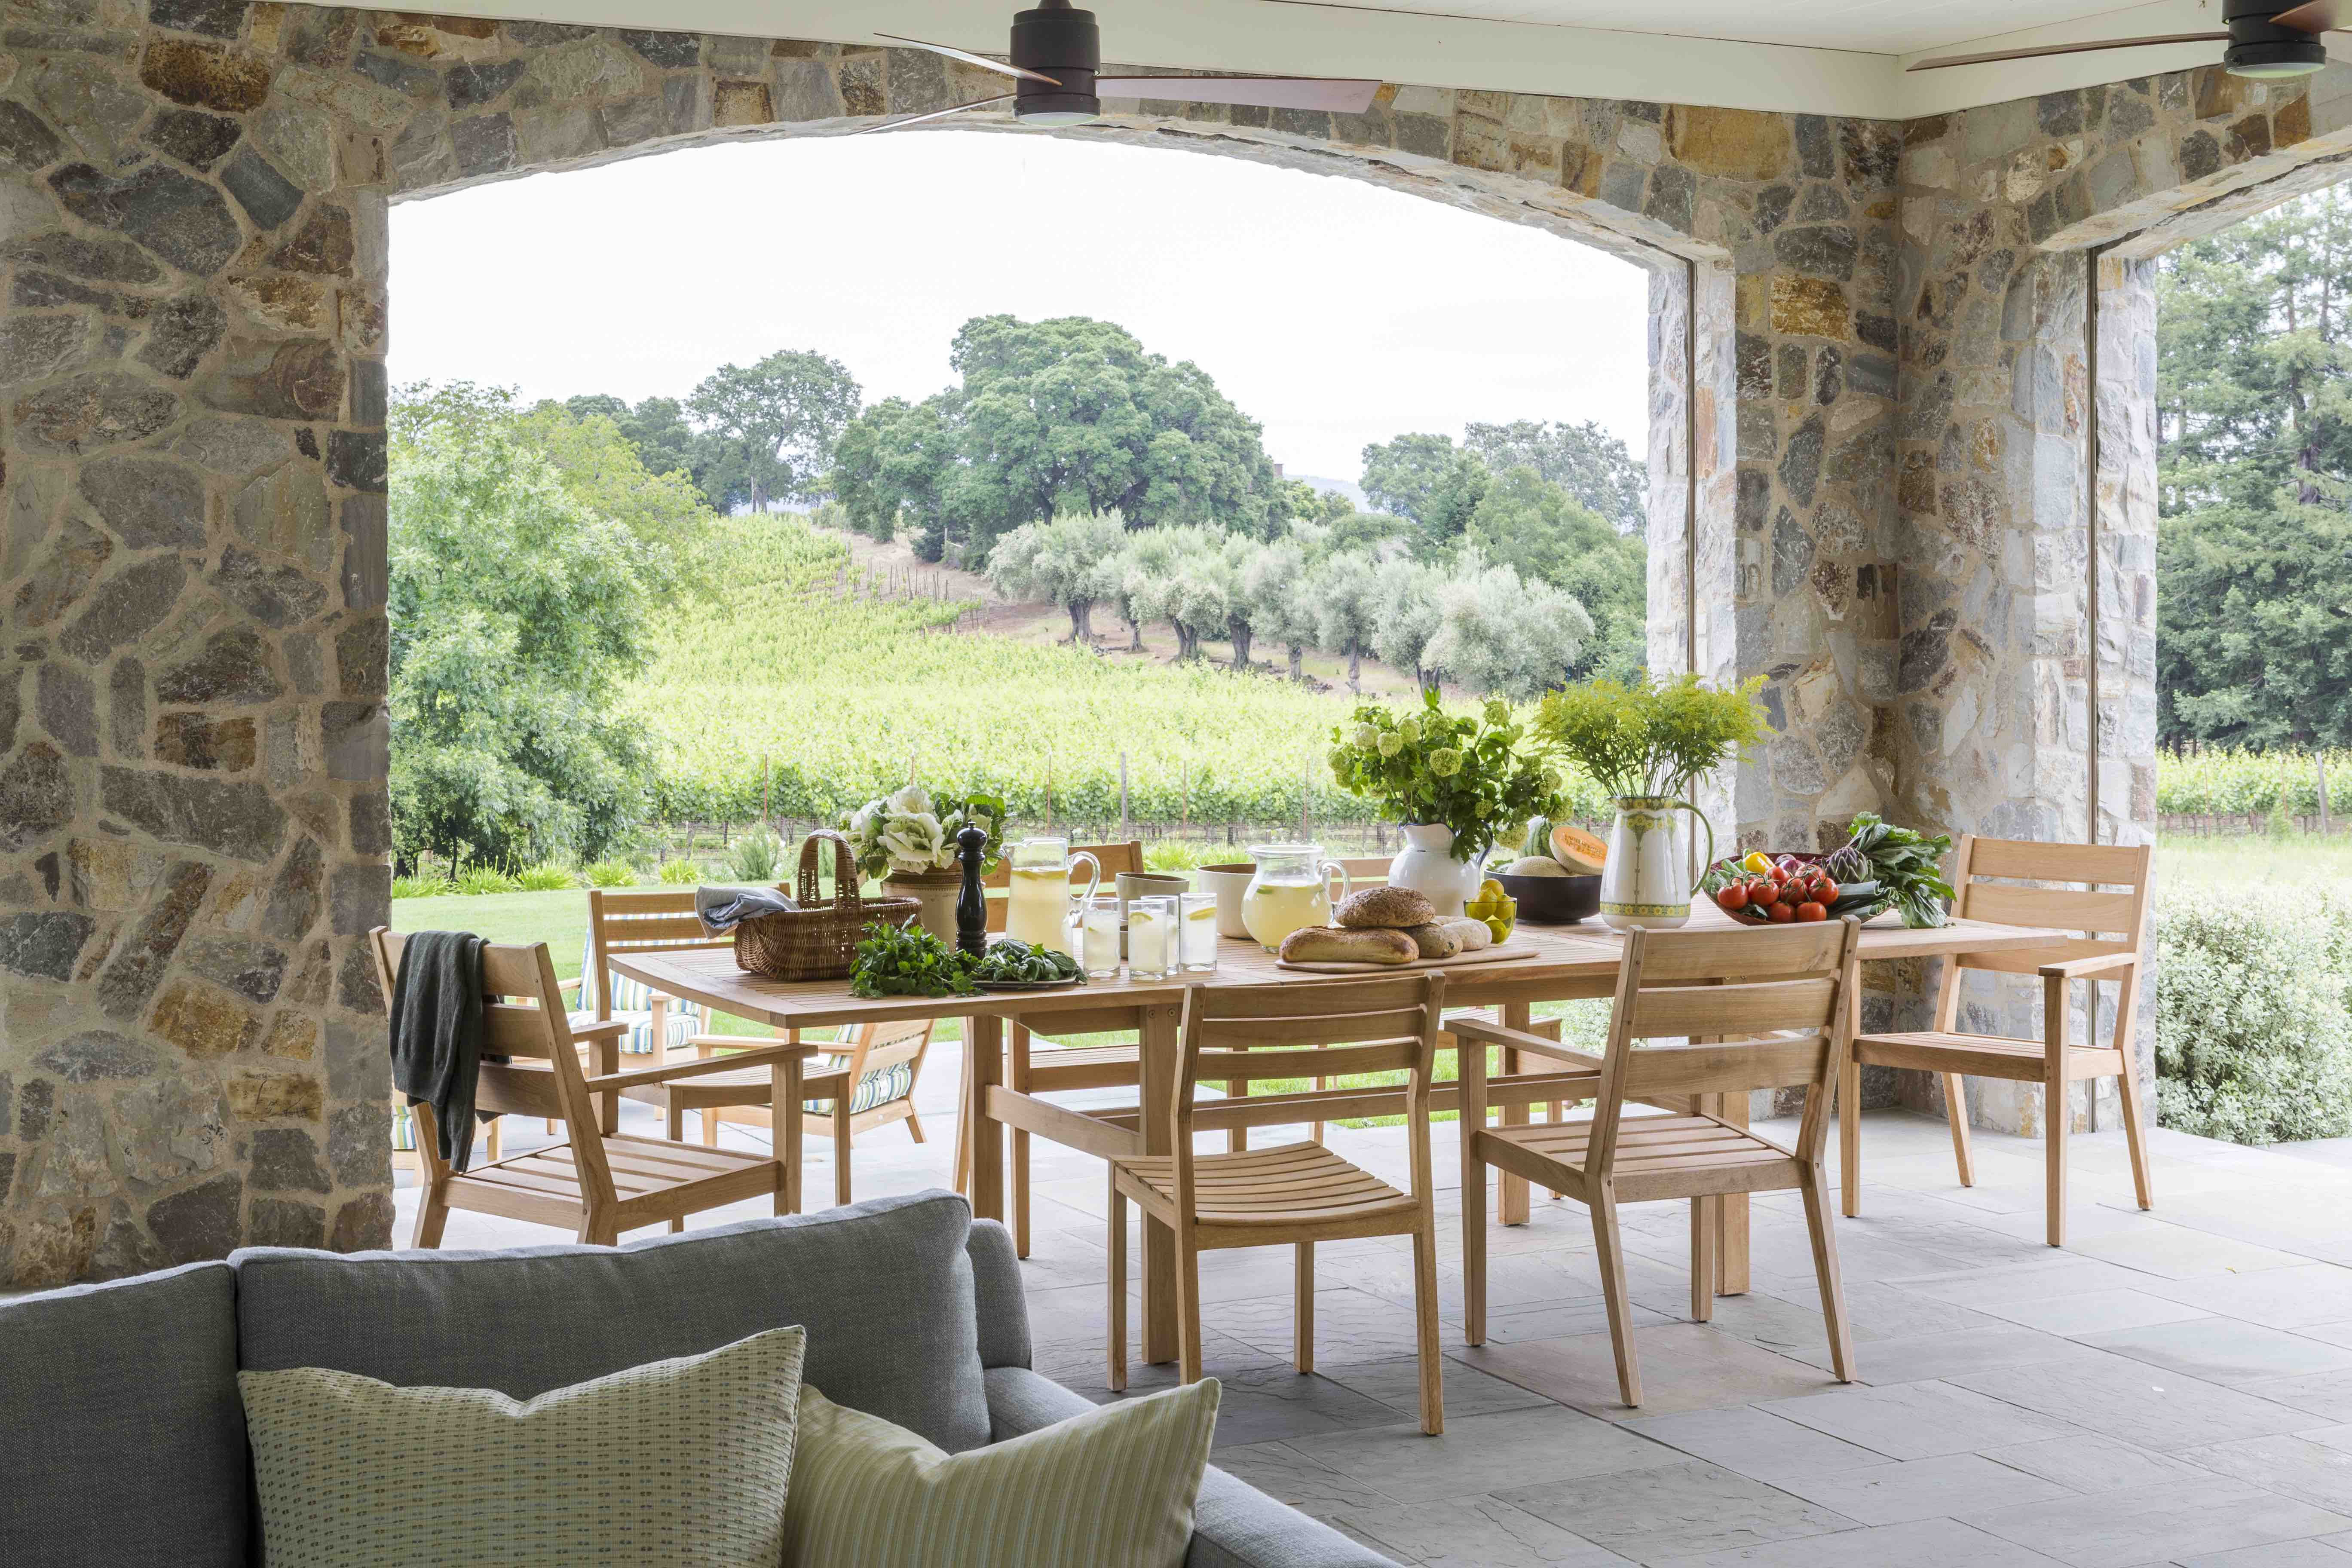 california home design. Find the Sonoma house tour with photos here  Thank you for feature California Home Design Featured in House Tour Alden Miller